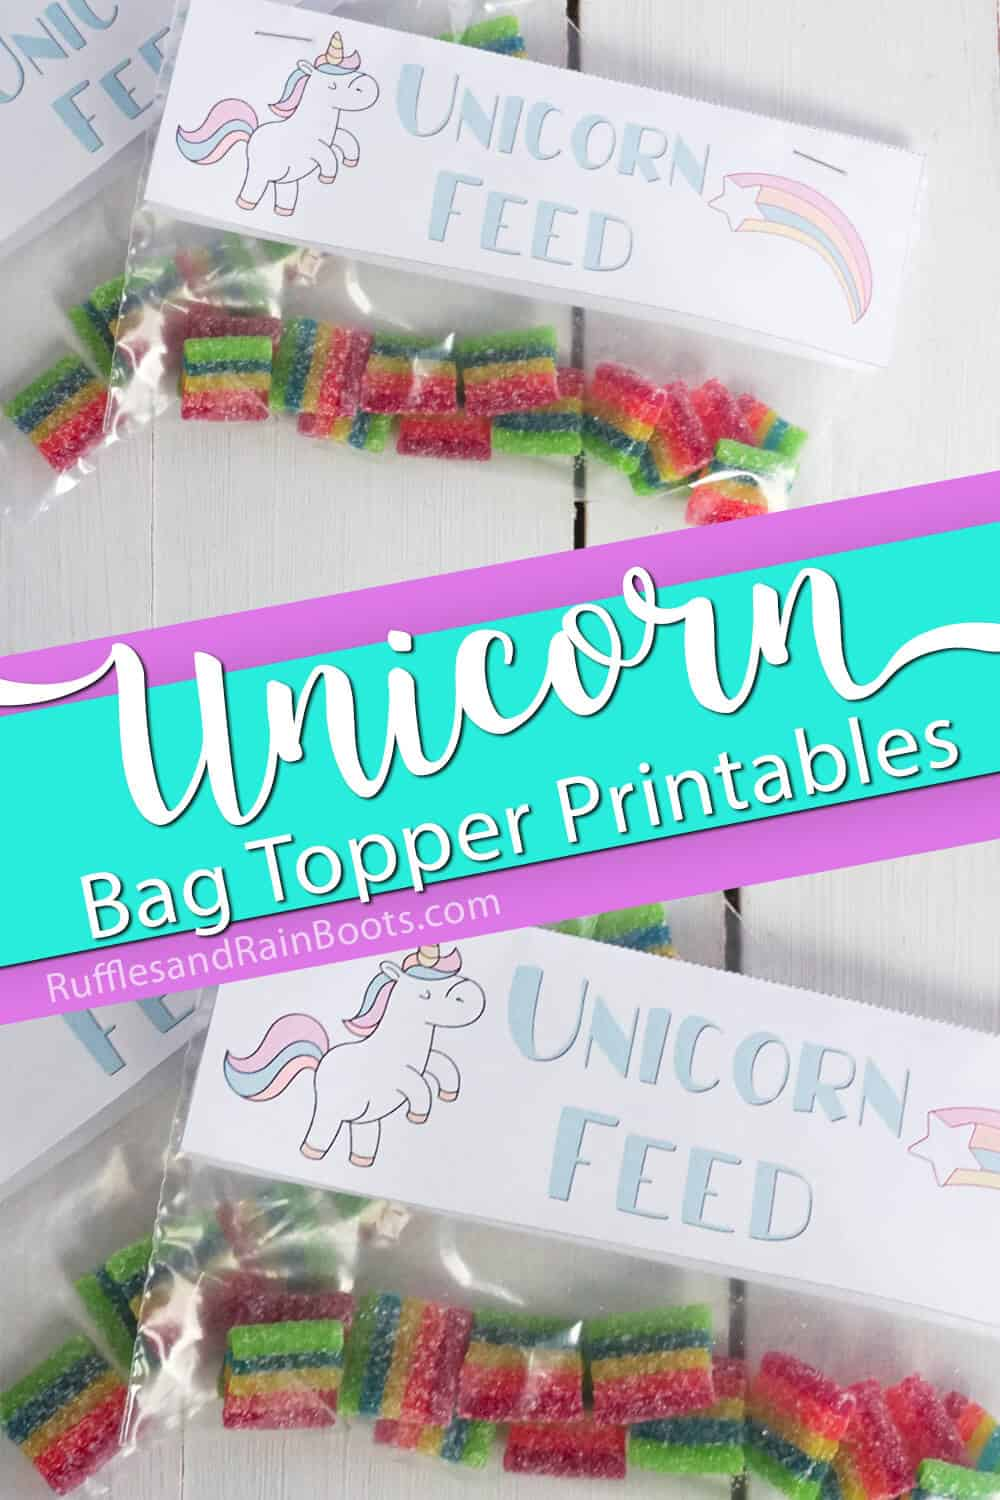 photo collage of unicorn party favor bag toppers with text which reads unicorn bag topper printables